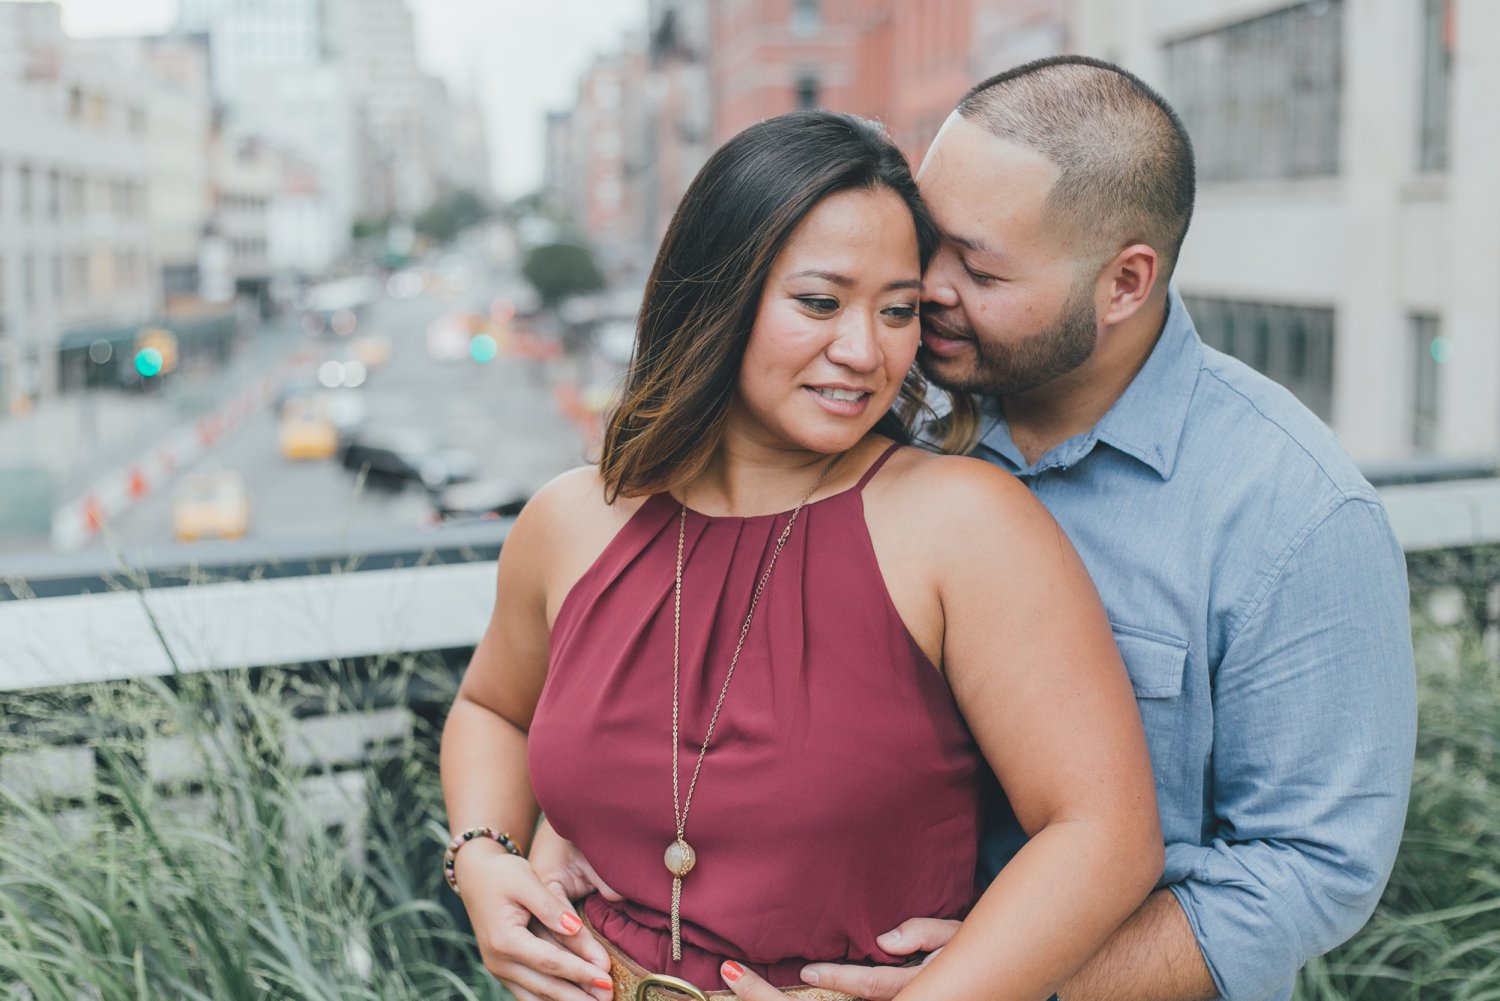 83NYC-NJ-ENGAGEMENT-PHOTOGRAPHY-BY-INTOTHESTORY-MOO-JAE.JPG